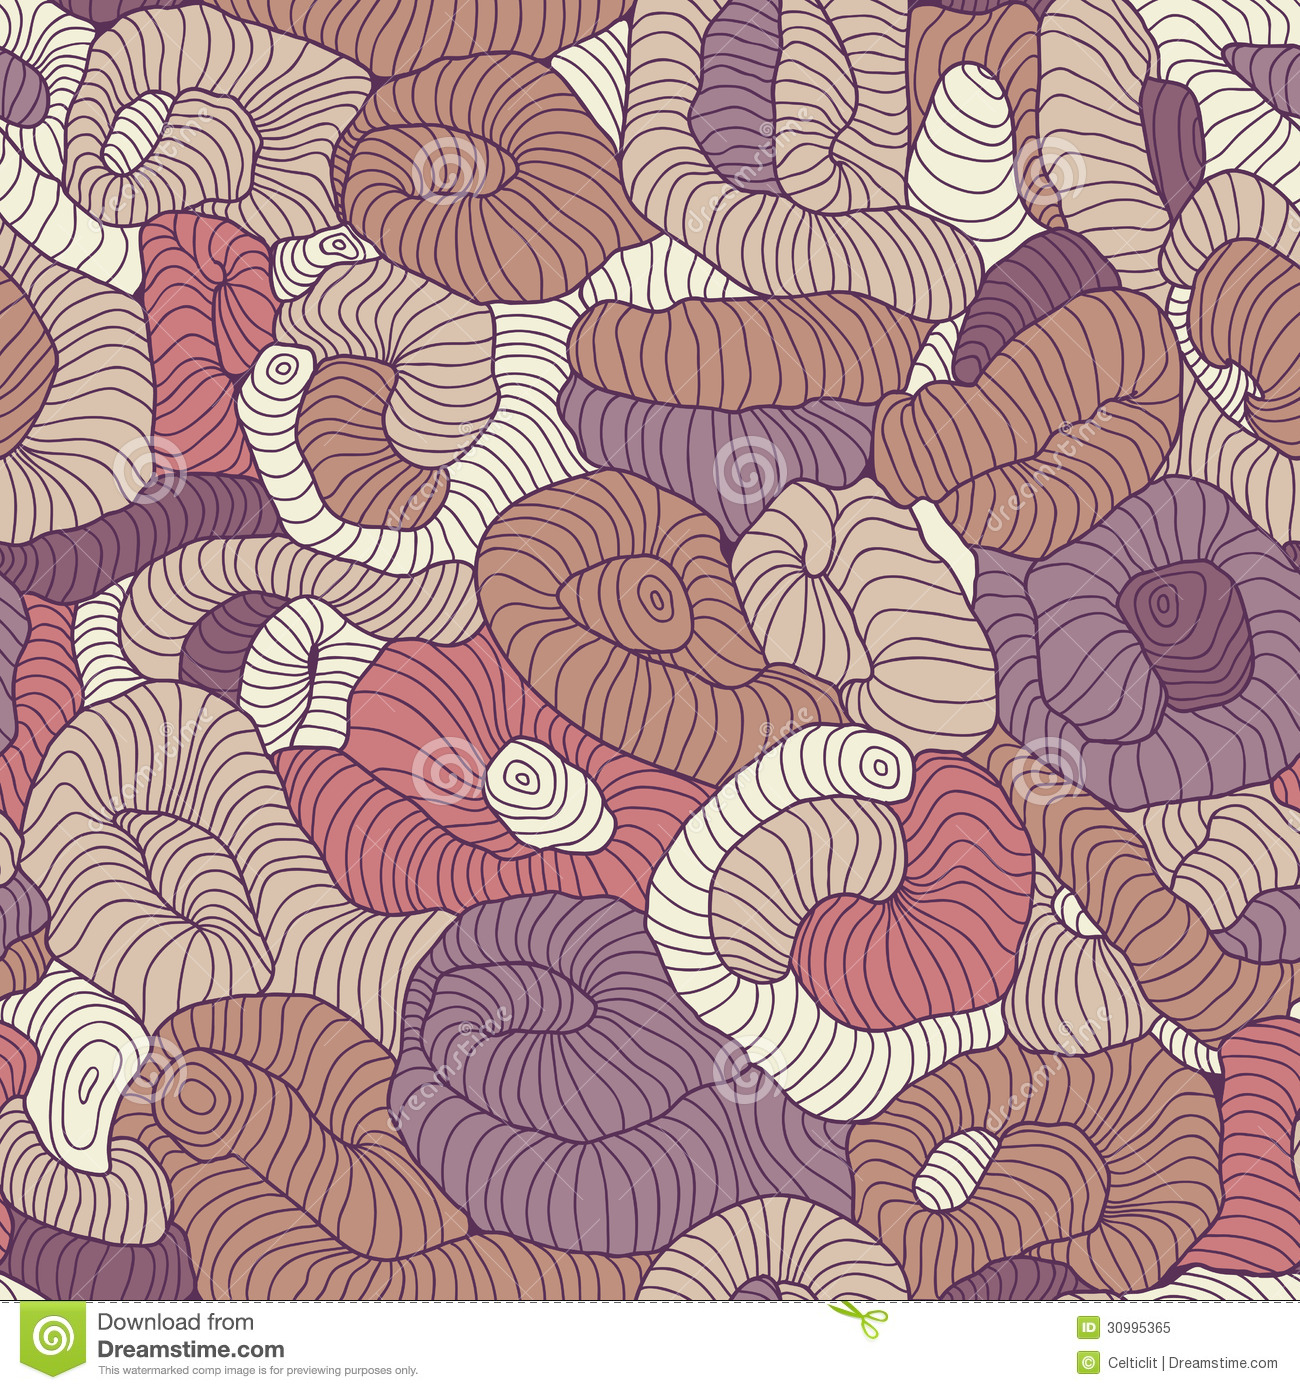 Seamless tangled pattern in colors